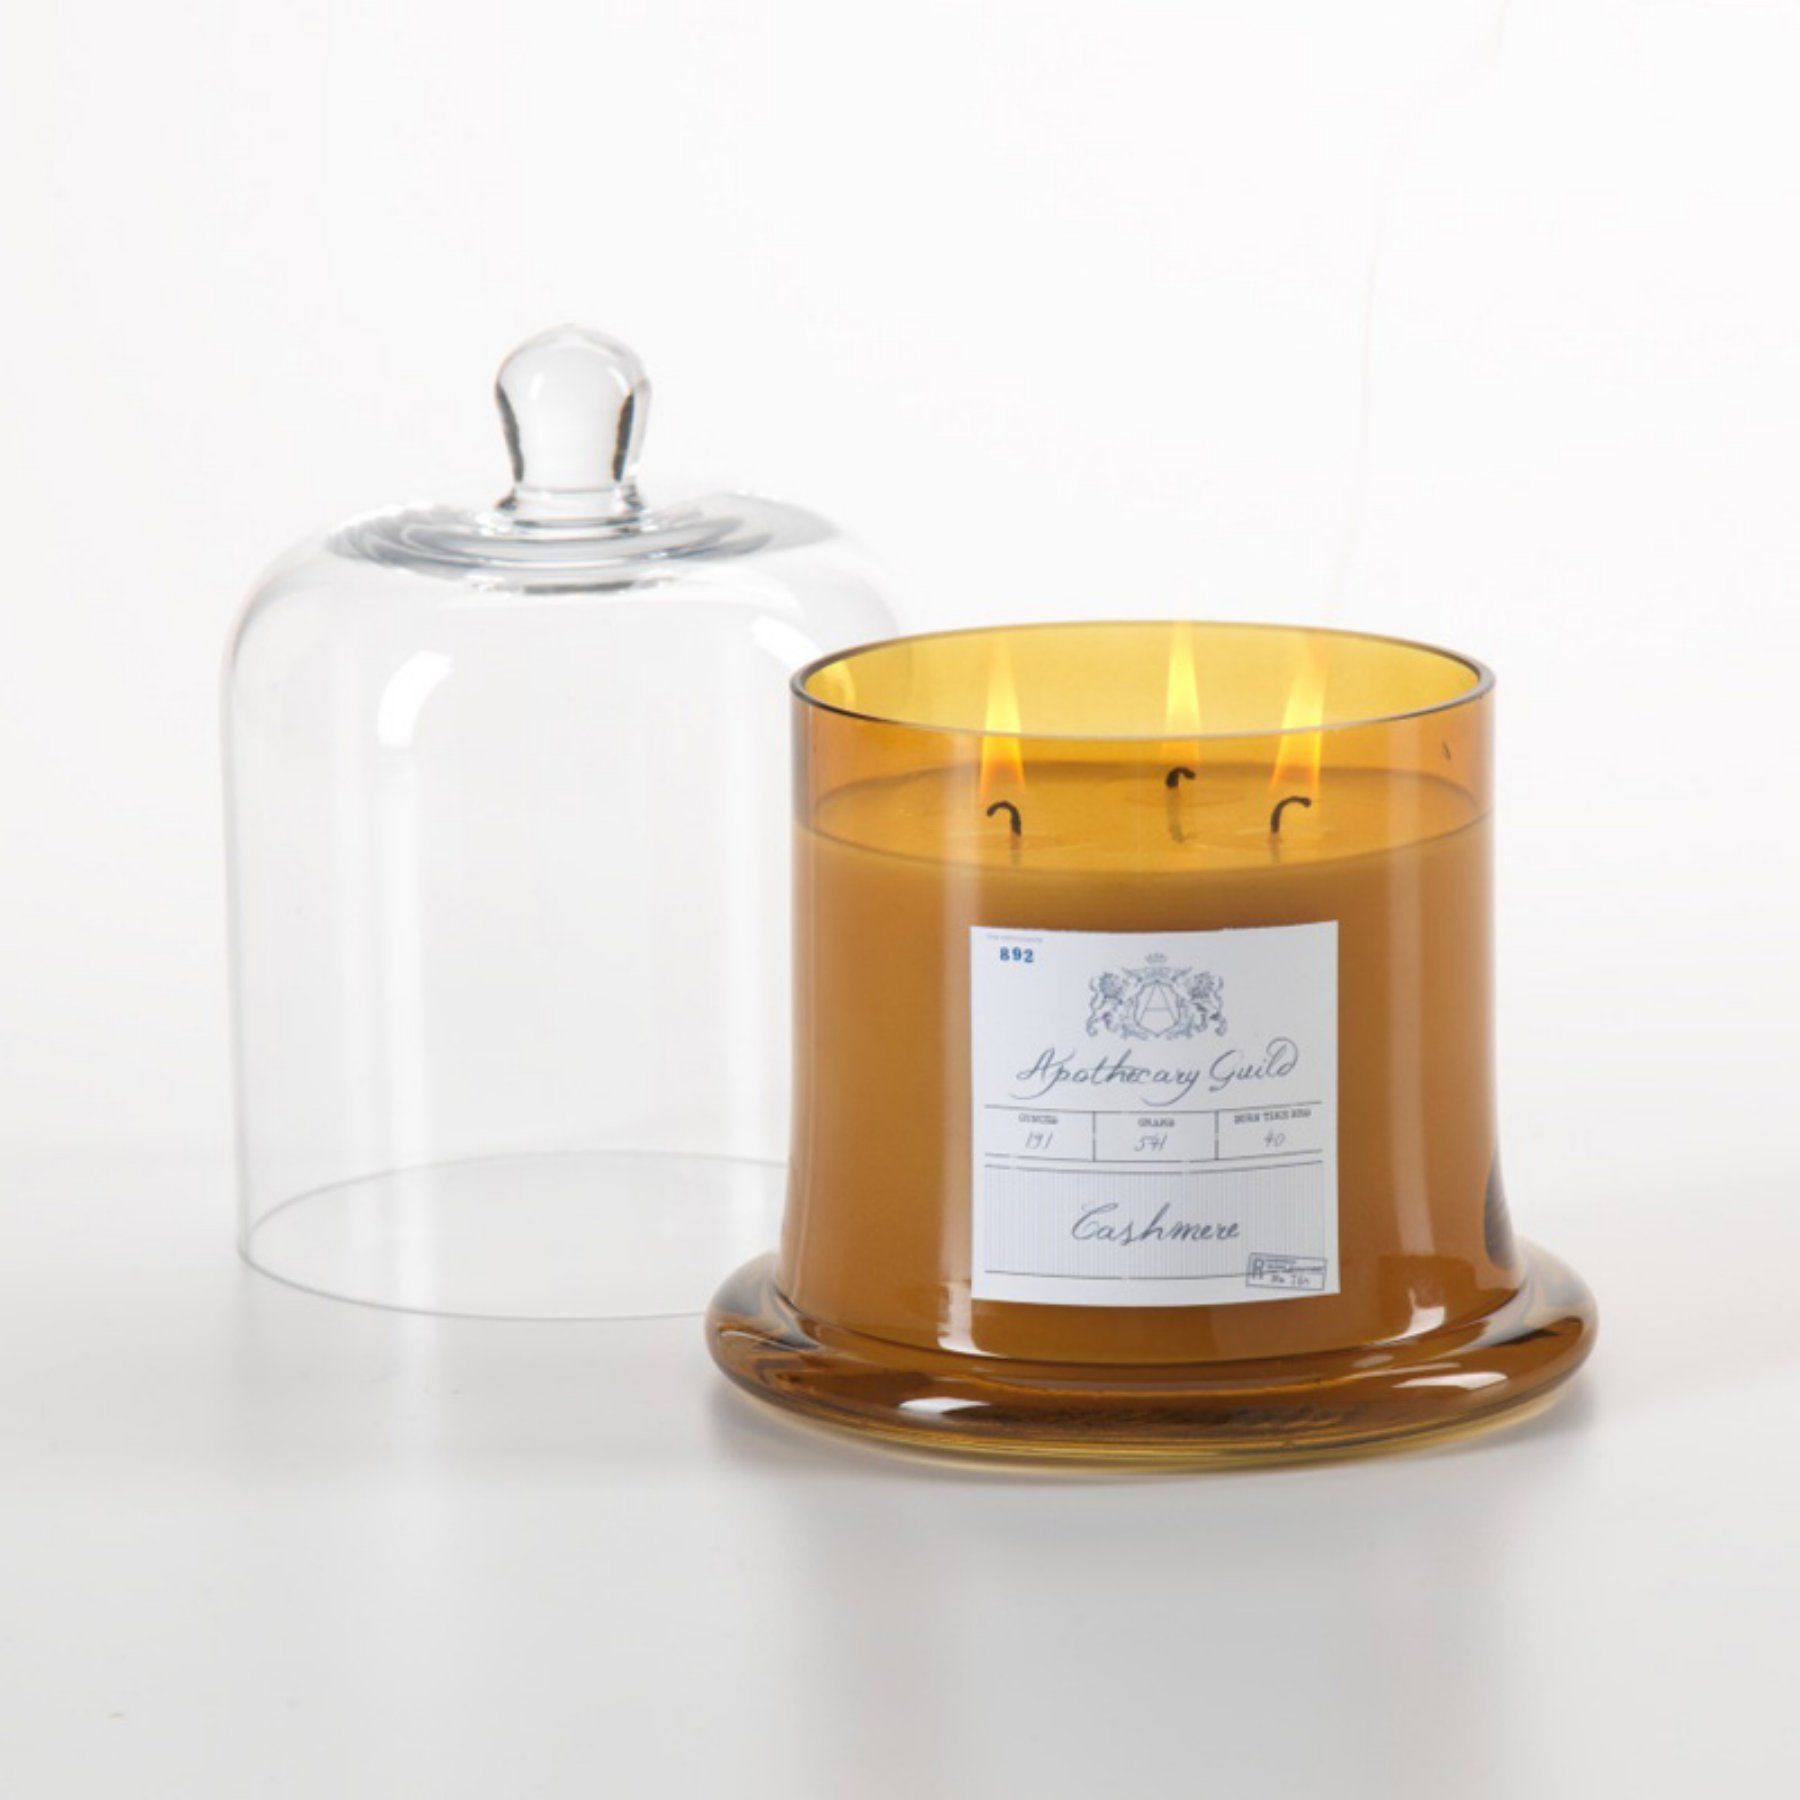 Zodax Cashmere Scented Candle In Glass Jar With Bell Cloche